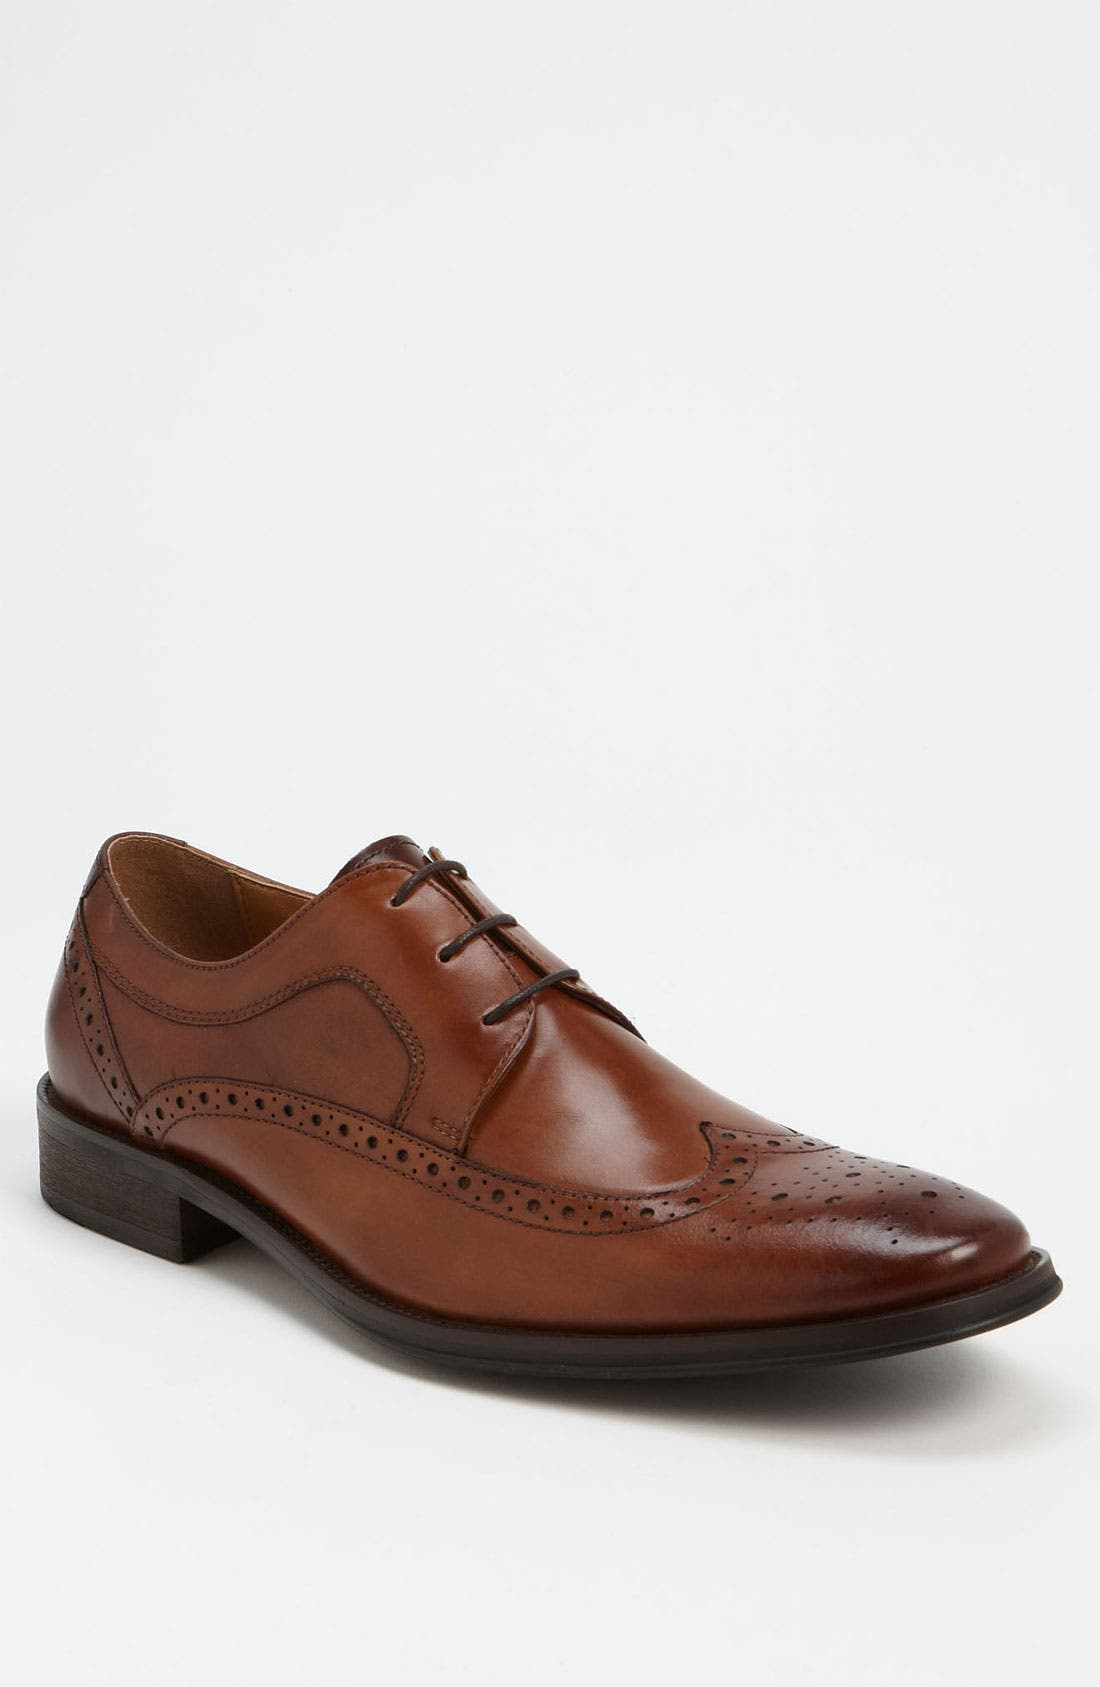 Alternate Image 1 Selected - ALDO 'Brownlie' Wingtip Oxford